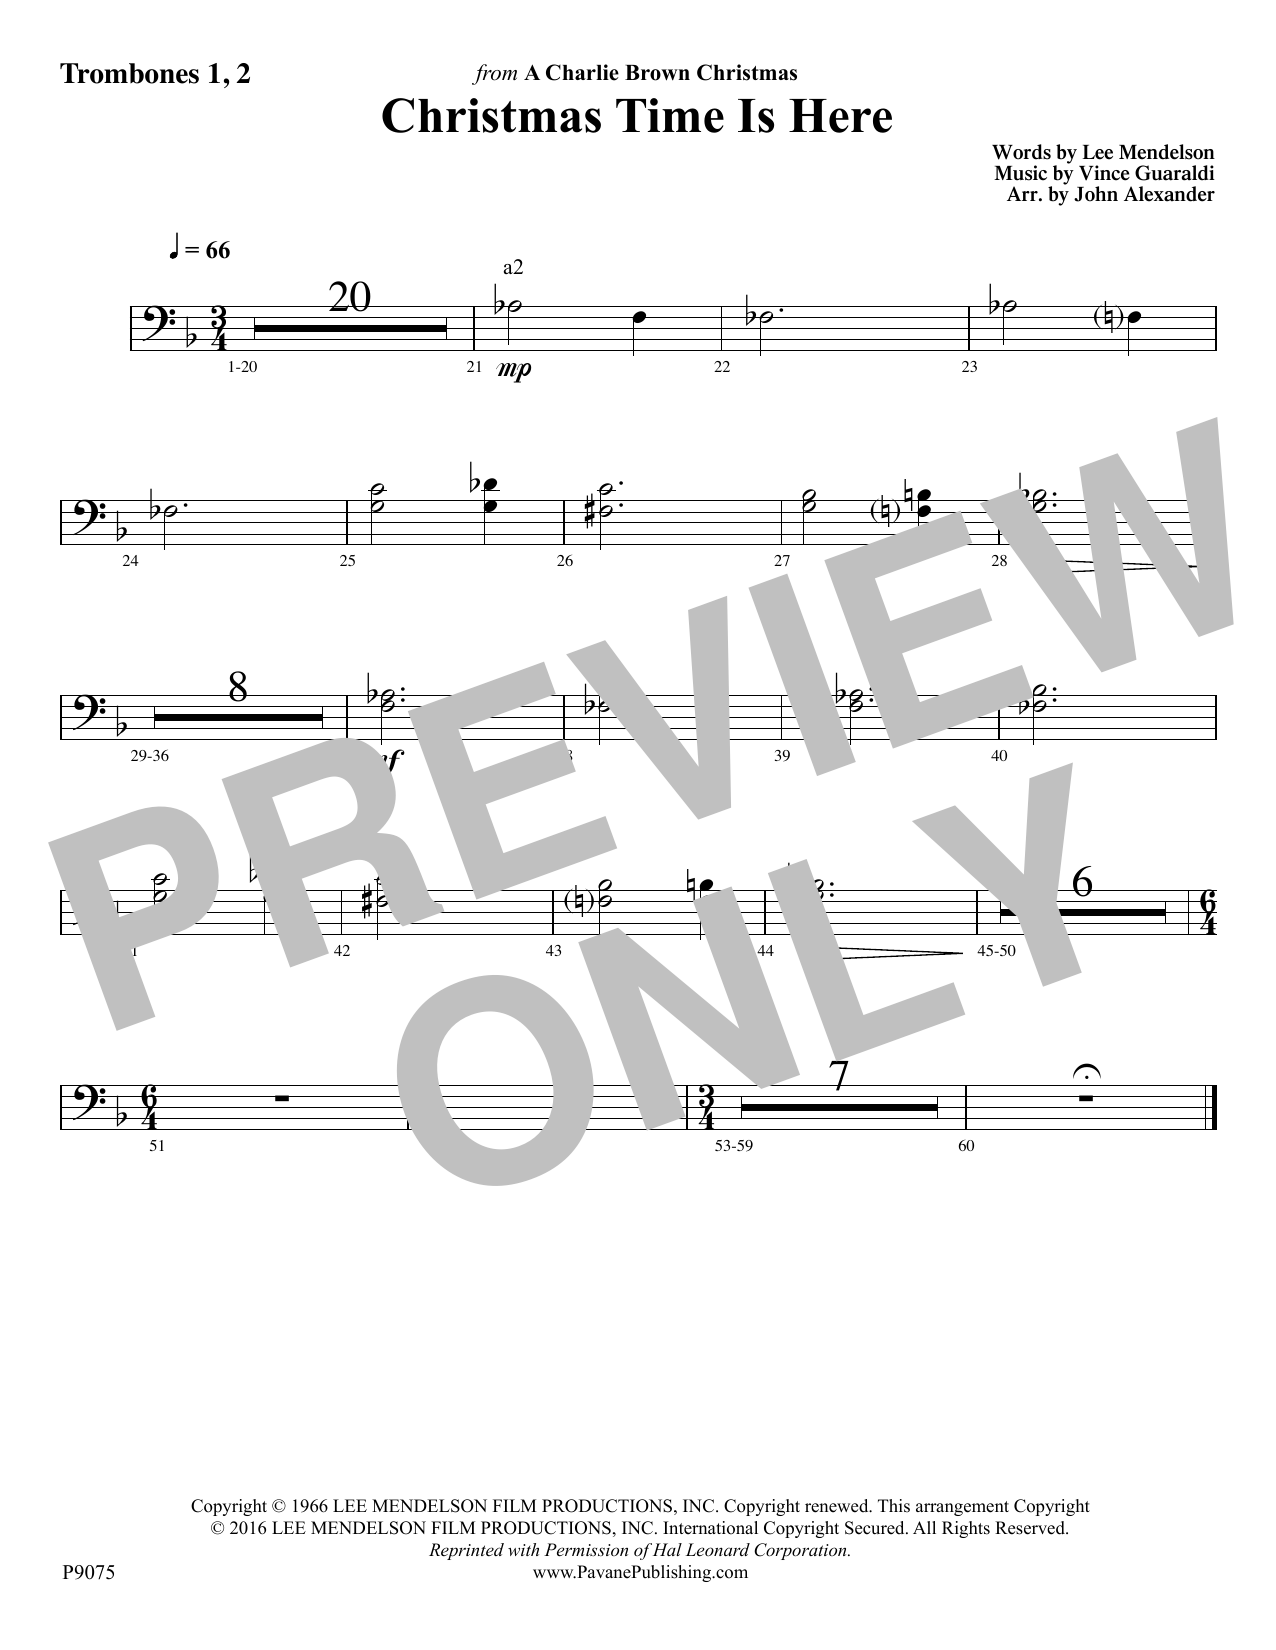 Lee Mendelson - Christmas Time Is Here - Trombone 1, 2